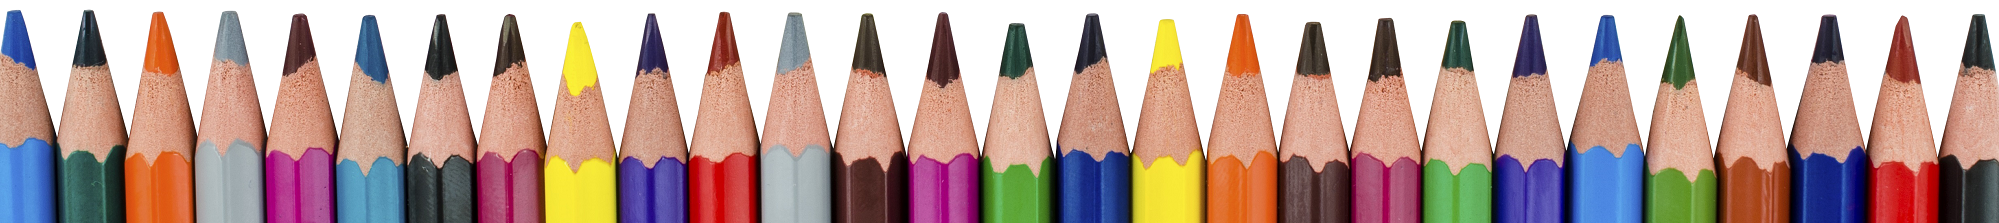 Color-pencils-in-a-row-with-colorful-background-000076289991_Full.png